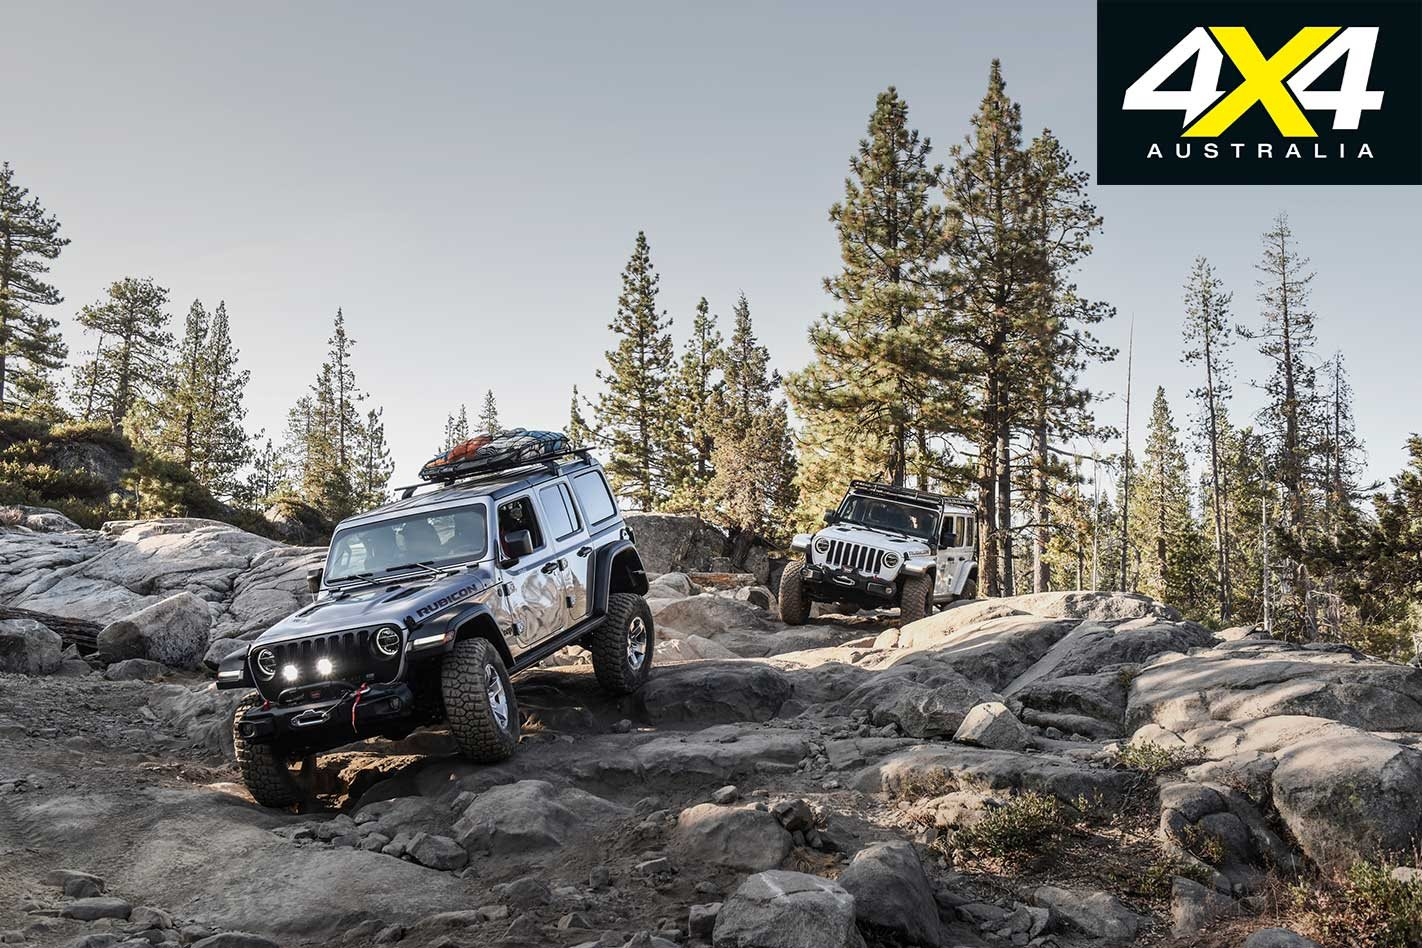 2019 Jeep Jl Wrangler Rubicon On The Trail 4x4 Review Rear Window Defrost First Frosty Sierra Nevada Pale Ale Cuts Through Dust Caked Back Of My Throat A Swim In Tranquil Waterhole Next To Our Tents Takes Care